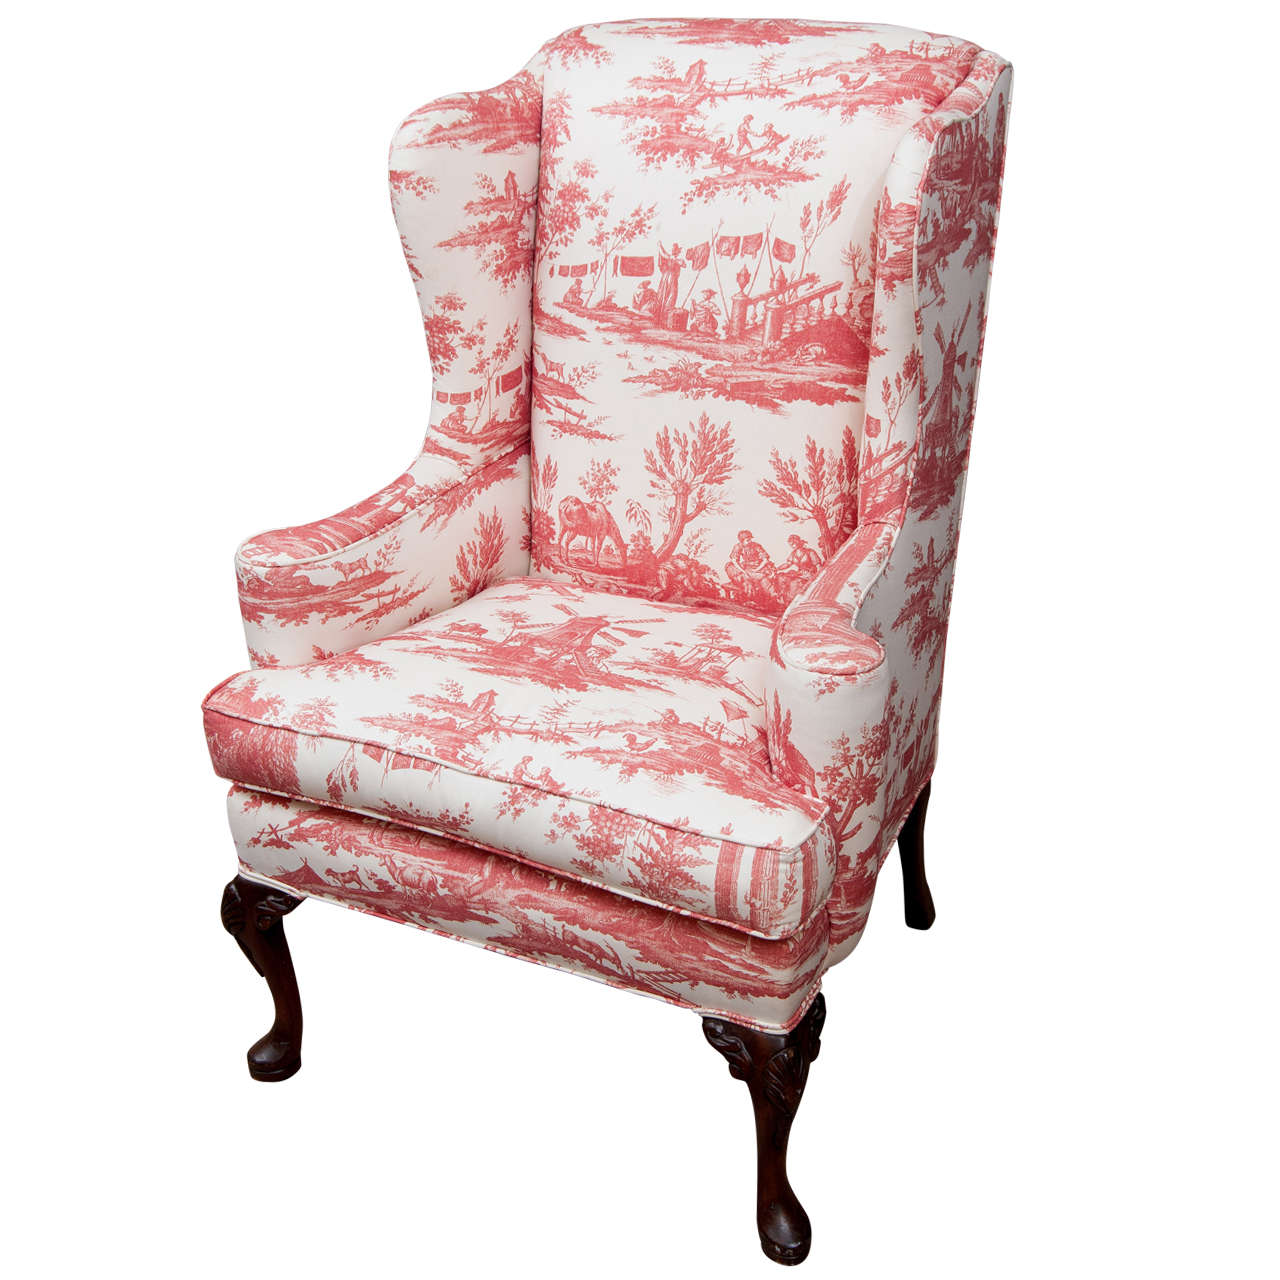 Antique queen anne wingback chair - Queen Anne Style Wing Chair 1